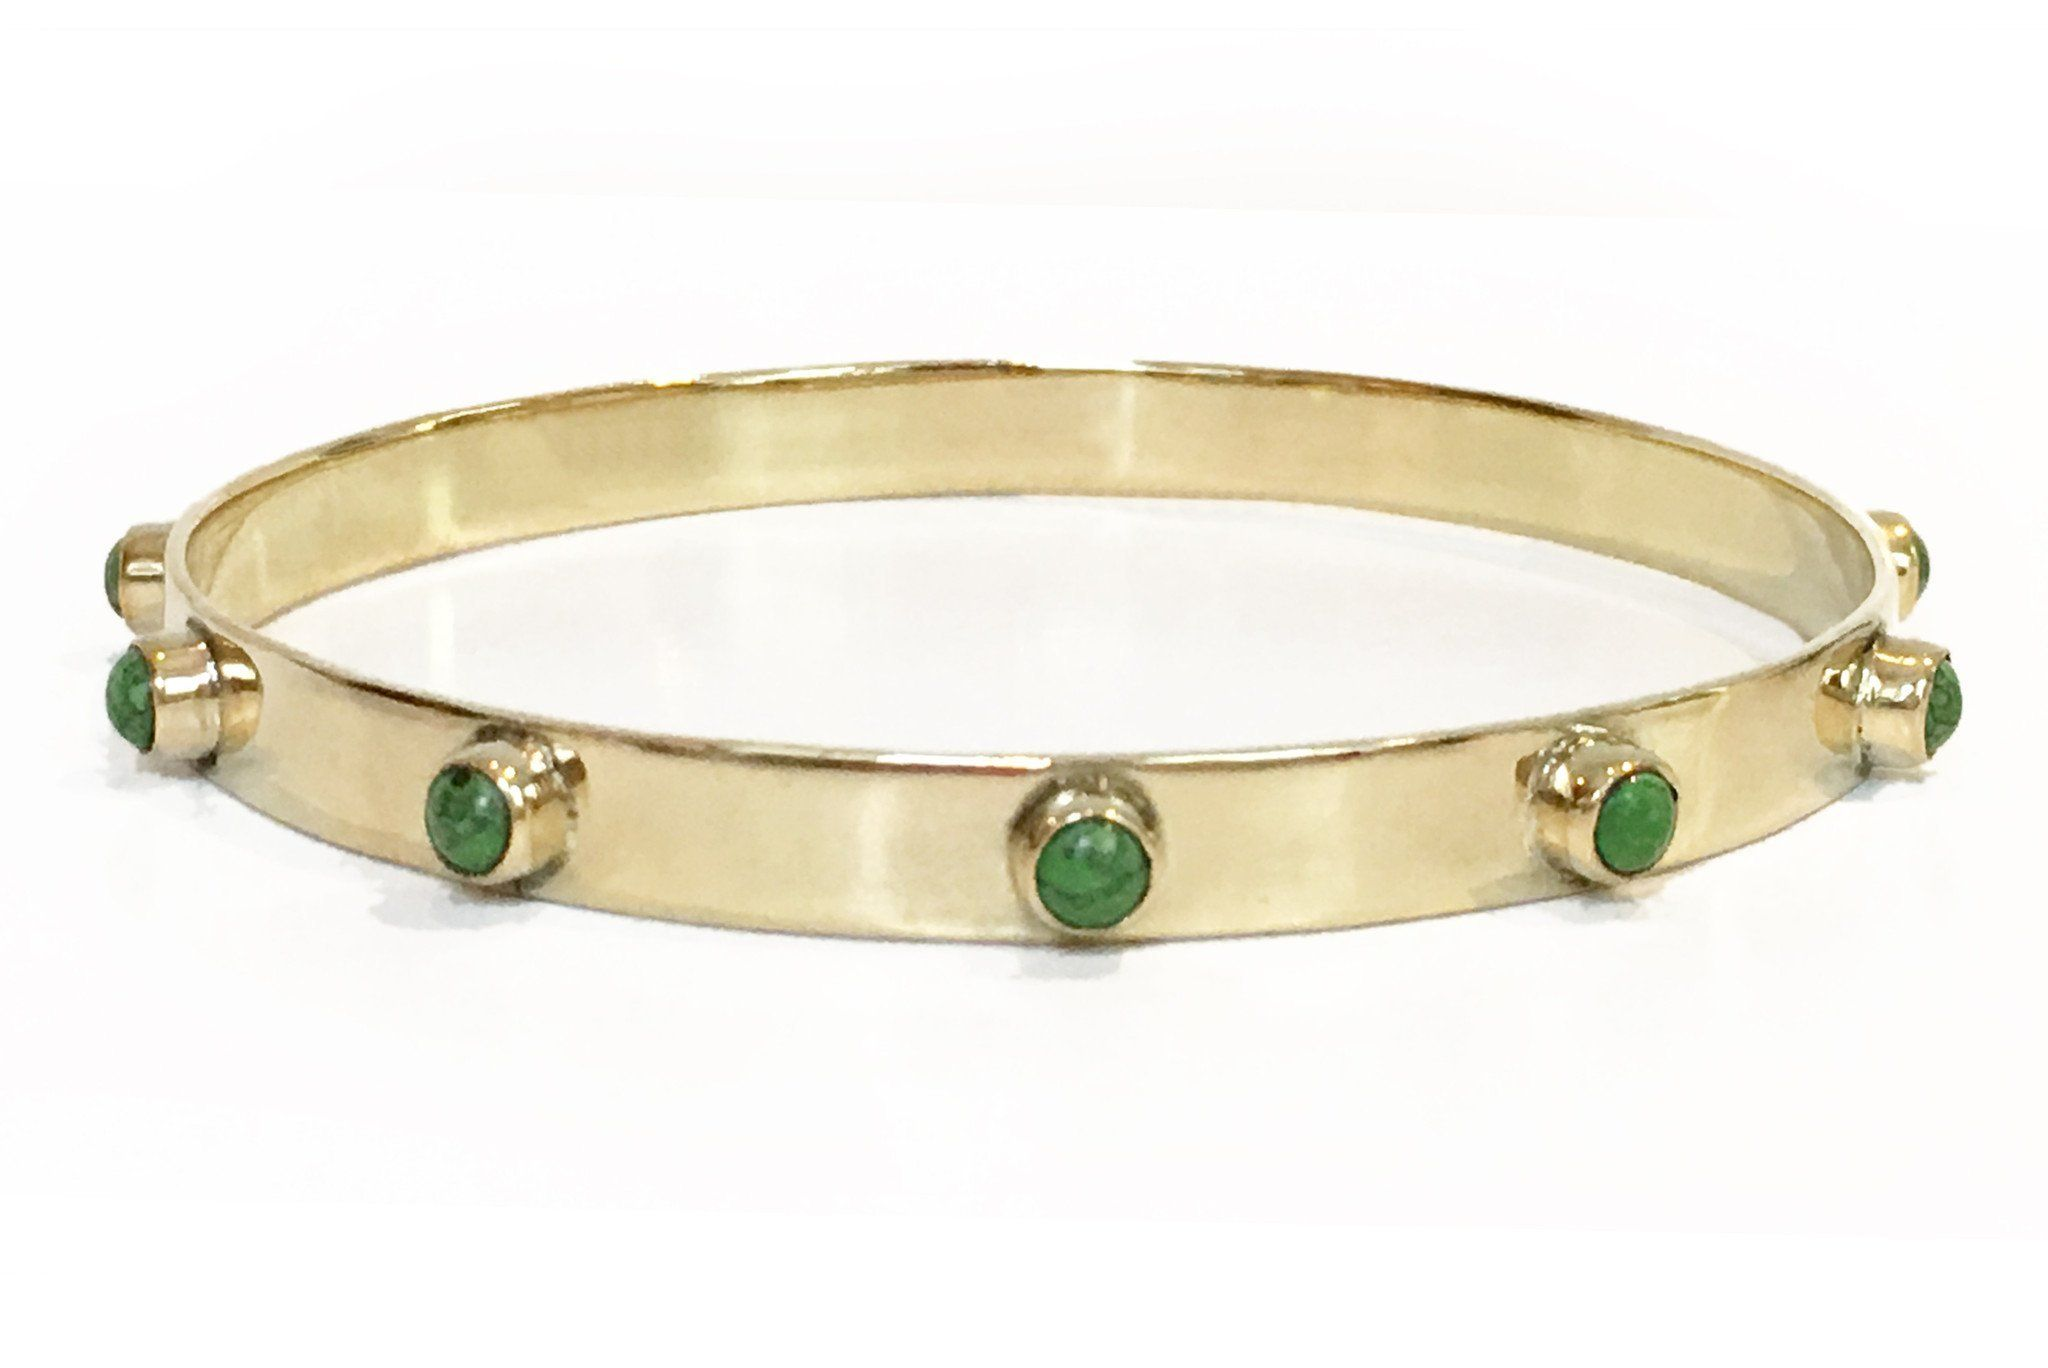 Graham Bangle in Green Turquoise